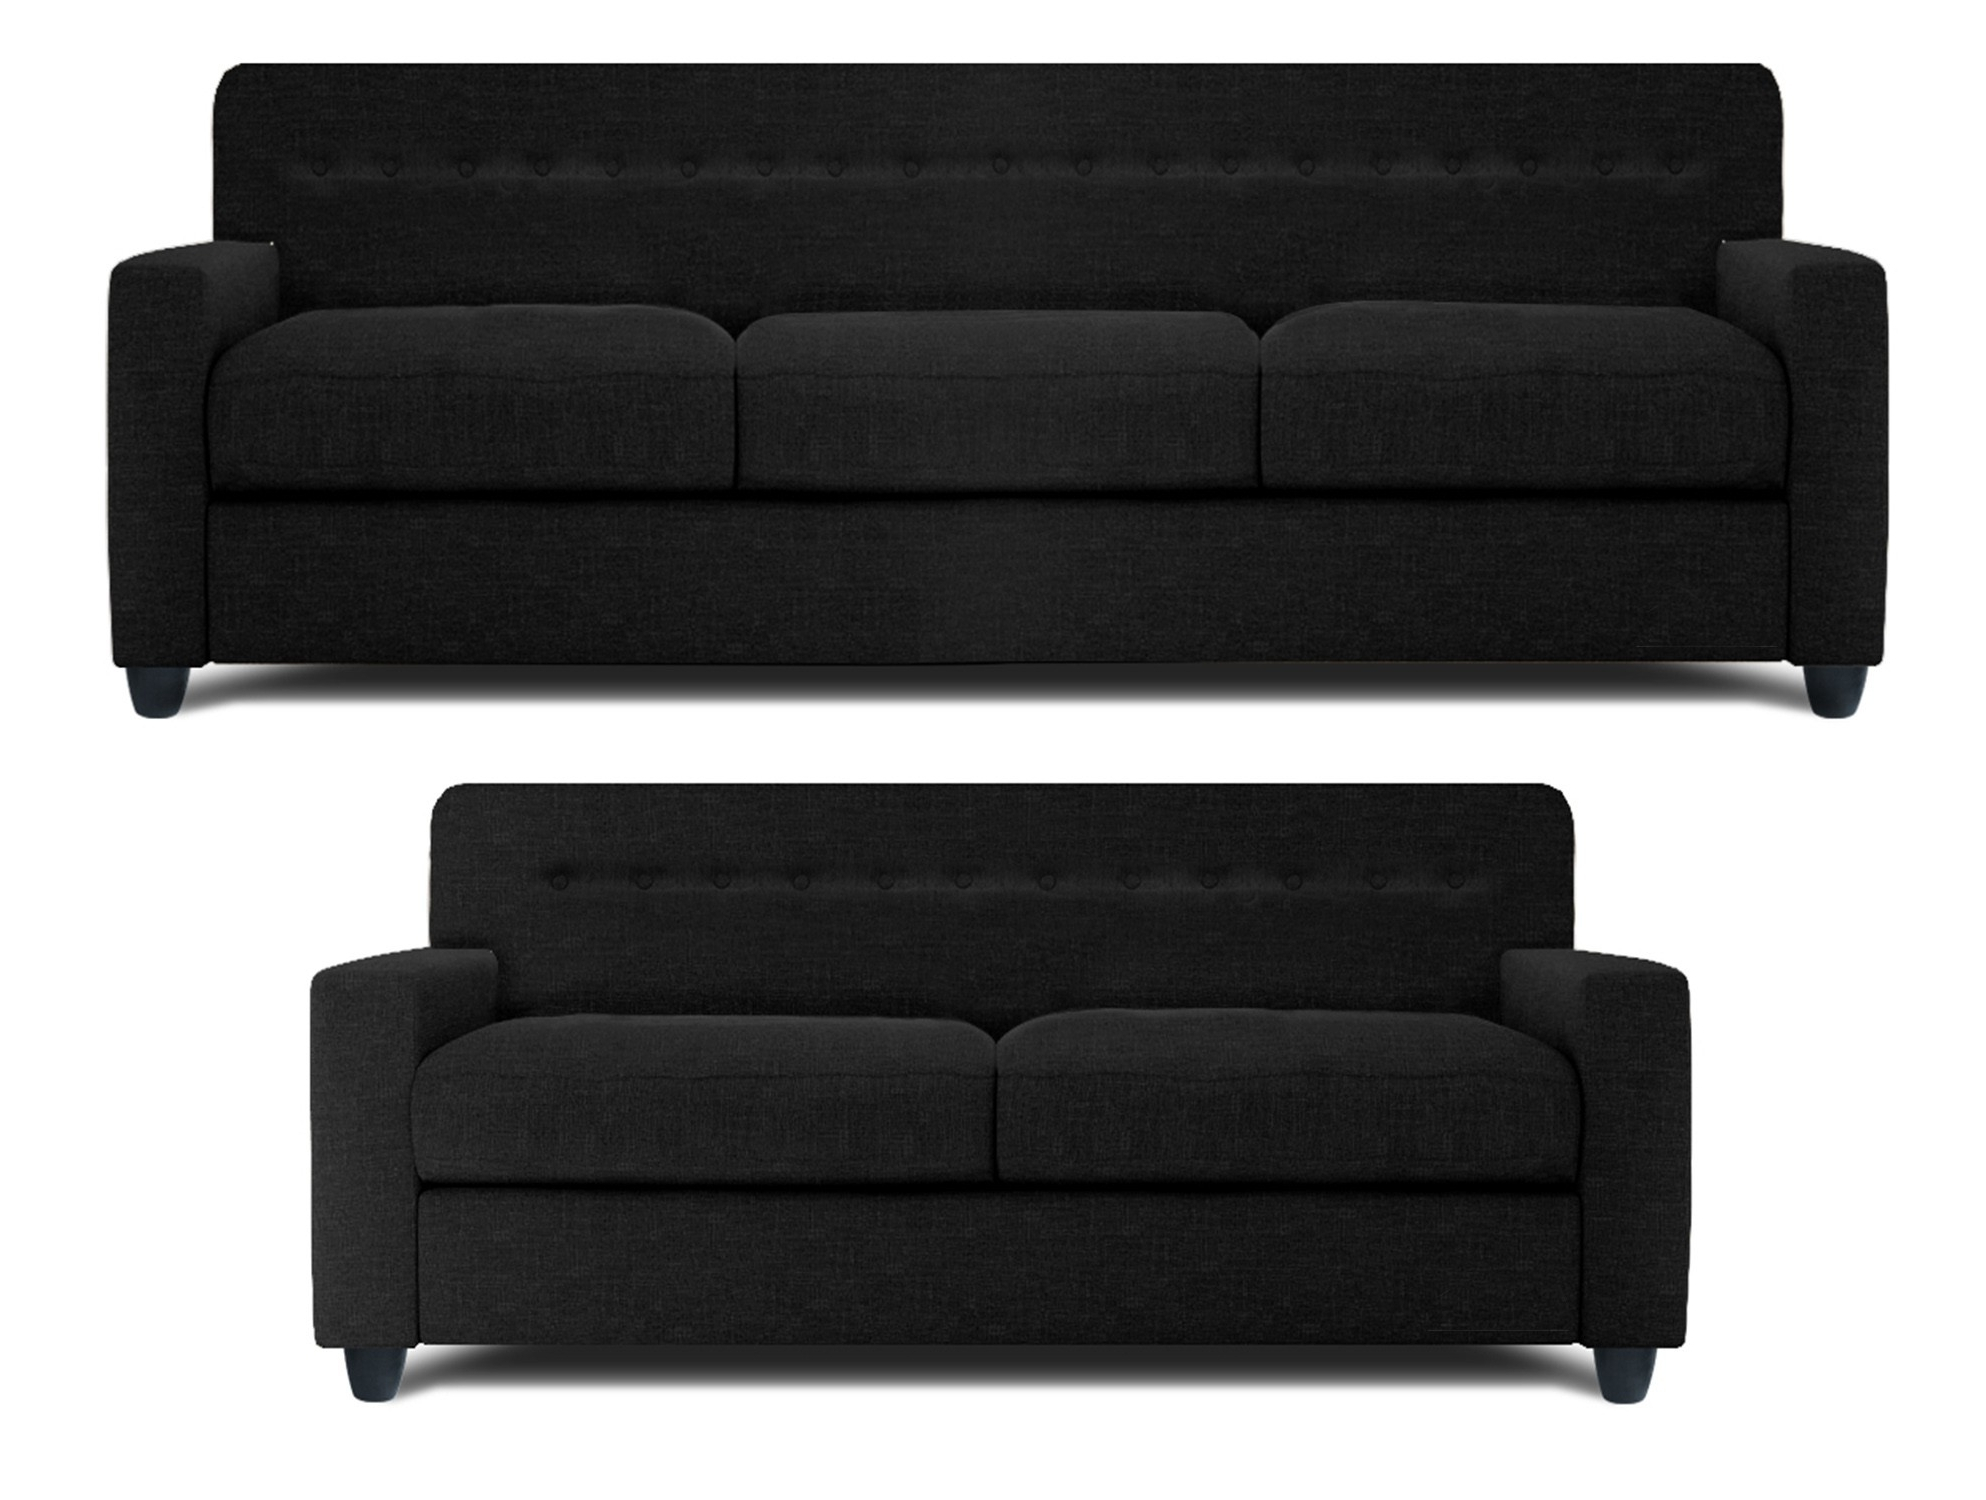 Black 2 Seater Sofas Throughout Most Current Dolphin Solitaire Fabric 3+2 Seater Sofa Set Black (View 5 of 20)